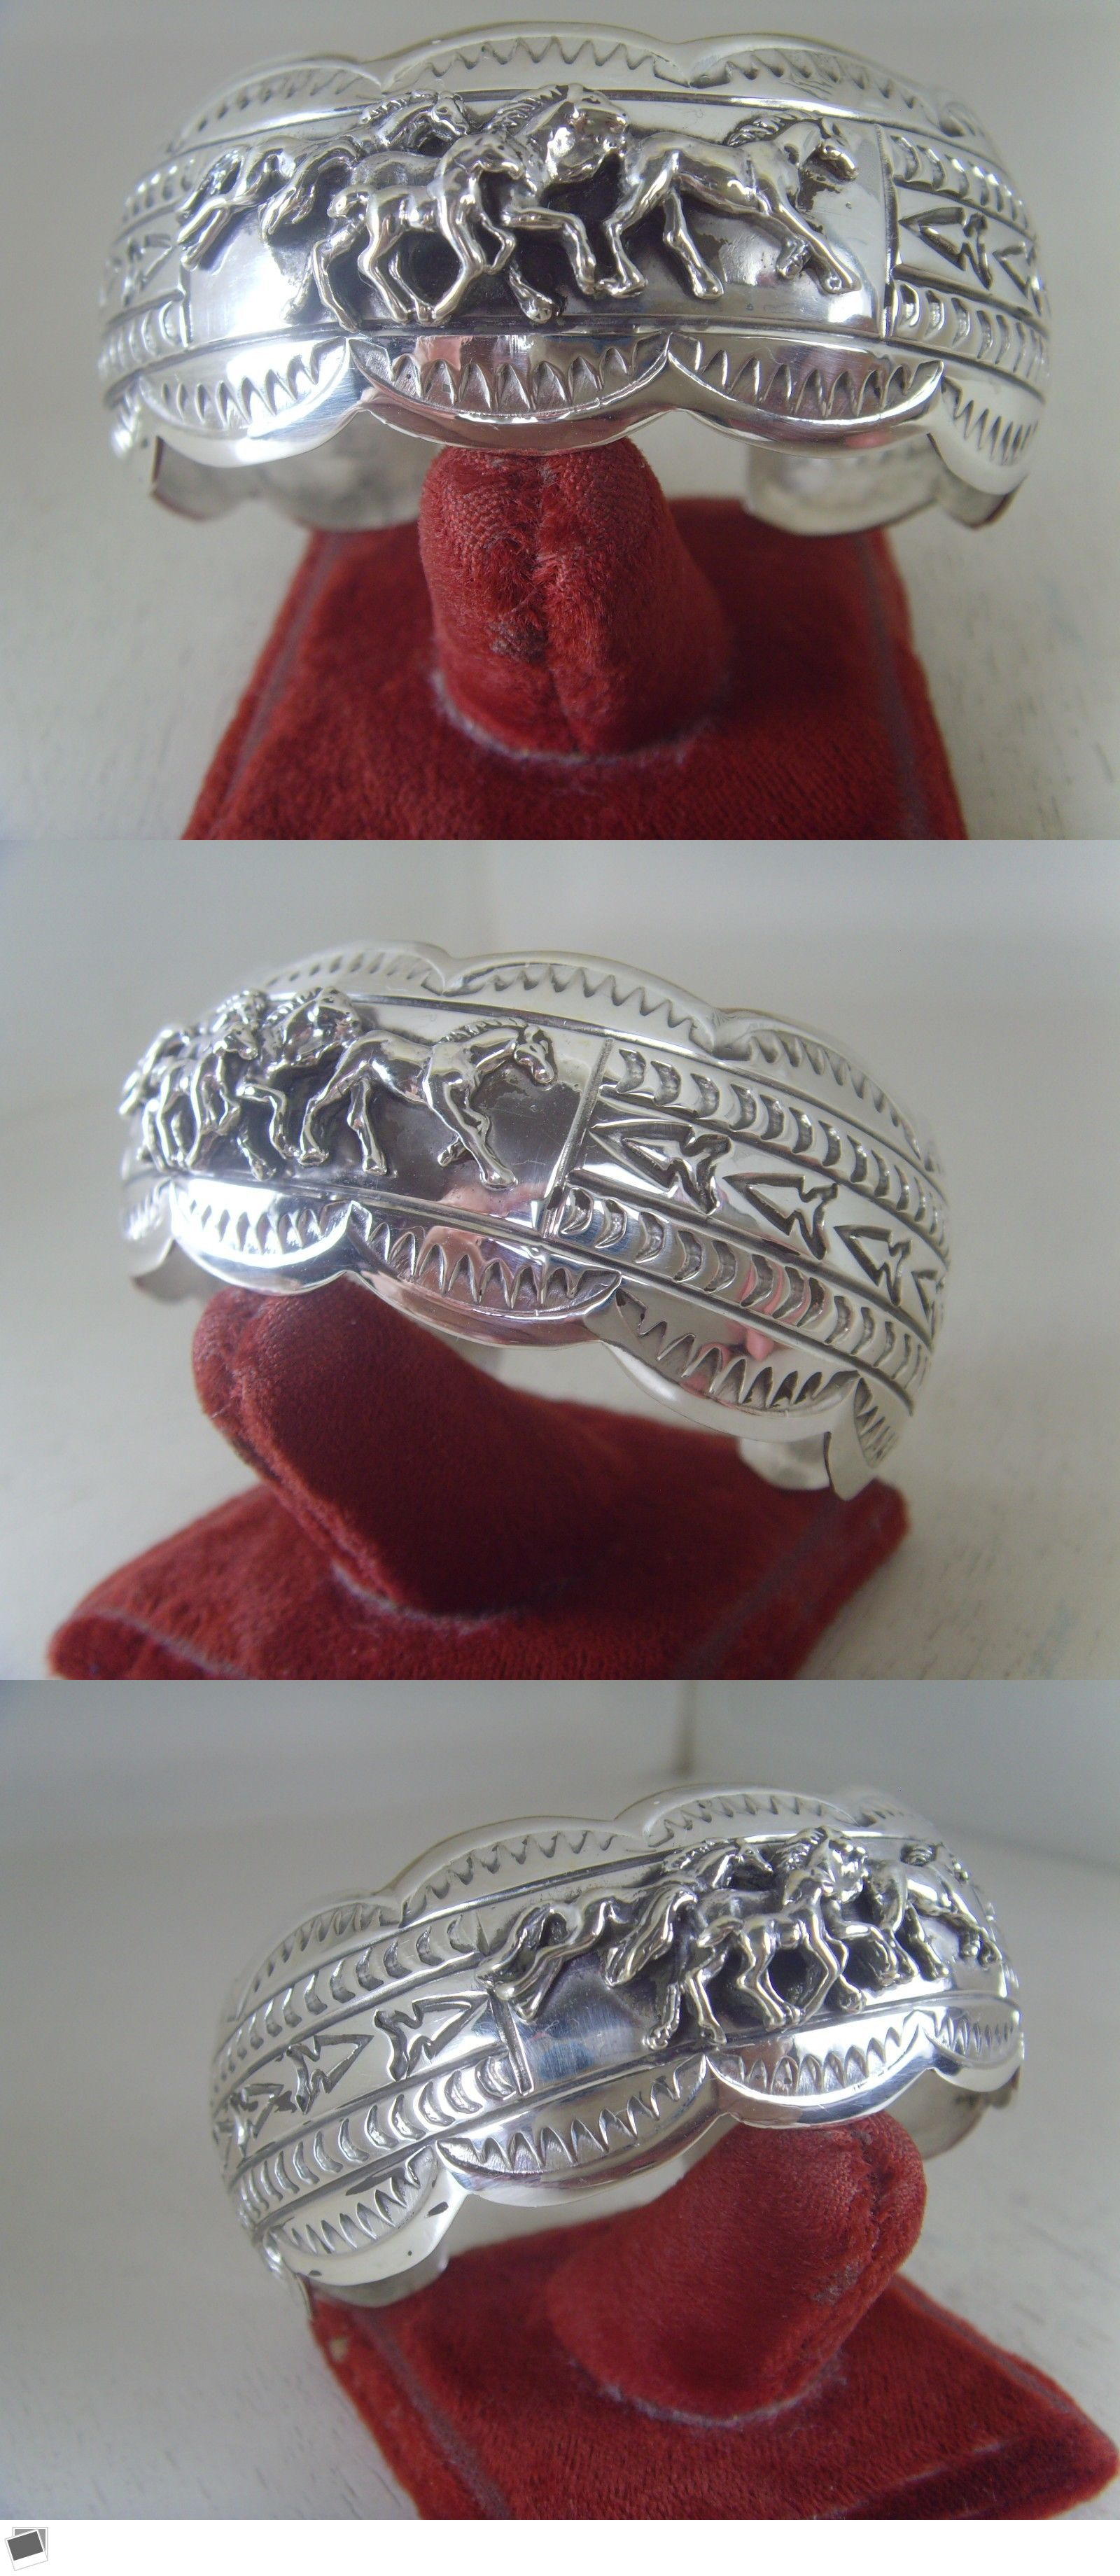 Bracelets 98496: Horse Bracelet .925 Sterling Silver And Signed By Carson B. Blackgoat No Stone -> BUY IT NOW ONLY: $169 on eBay!